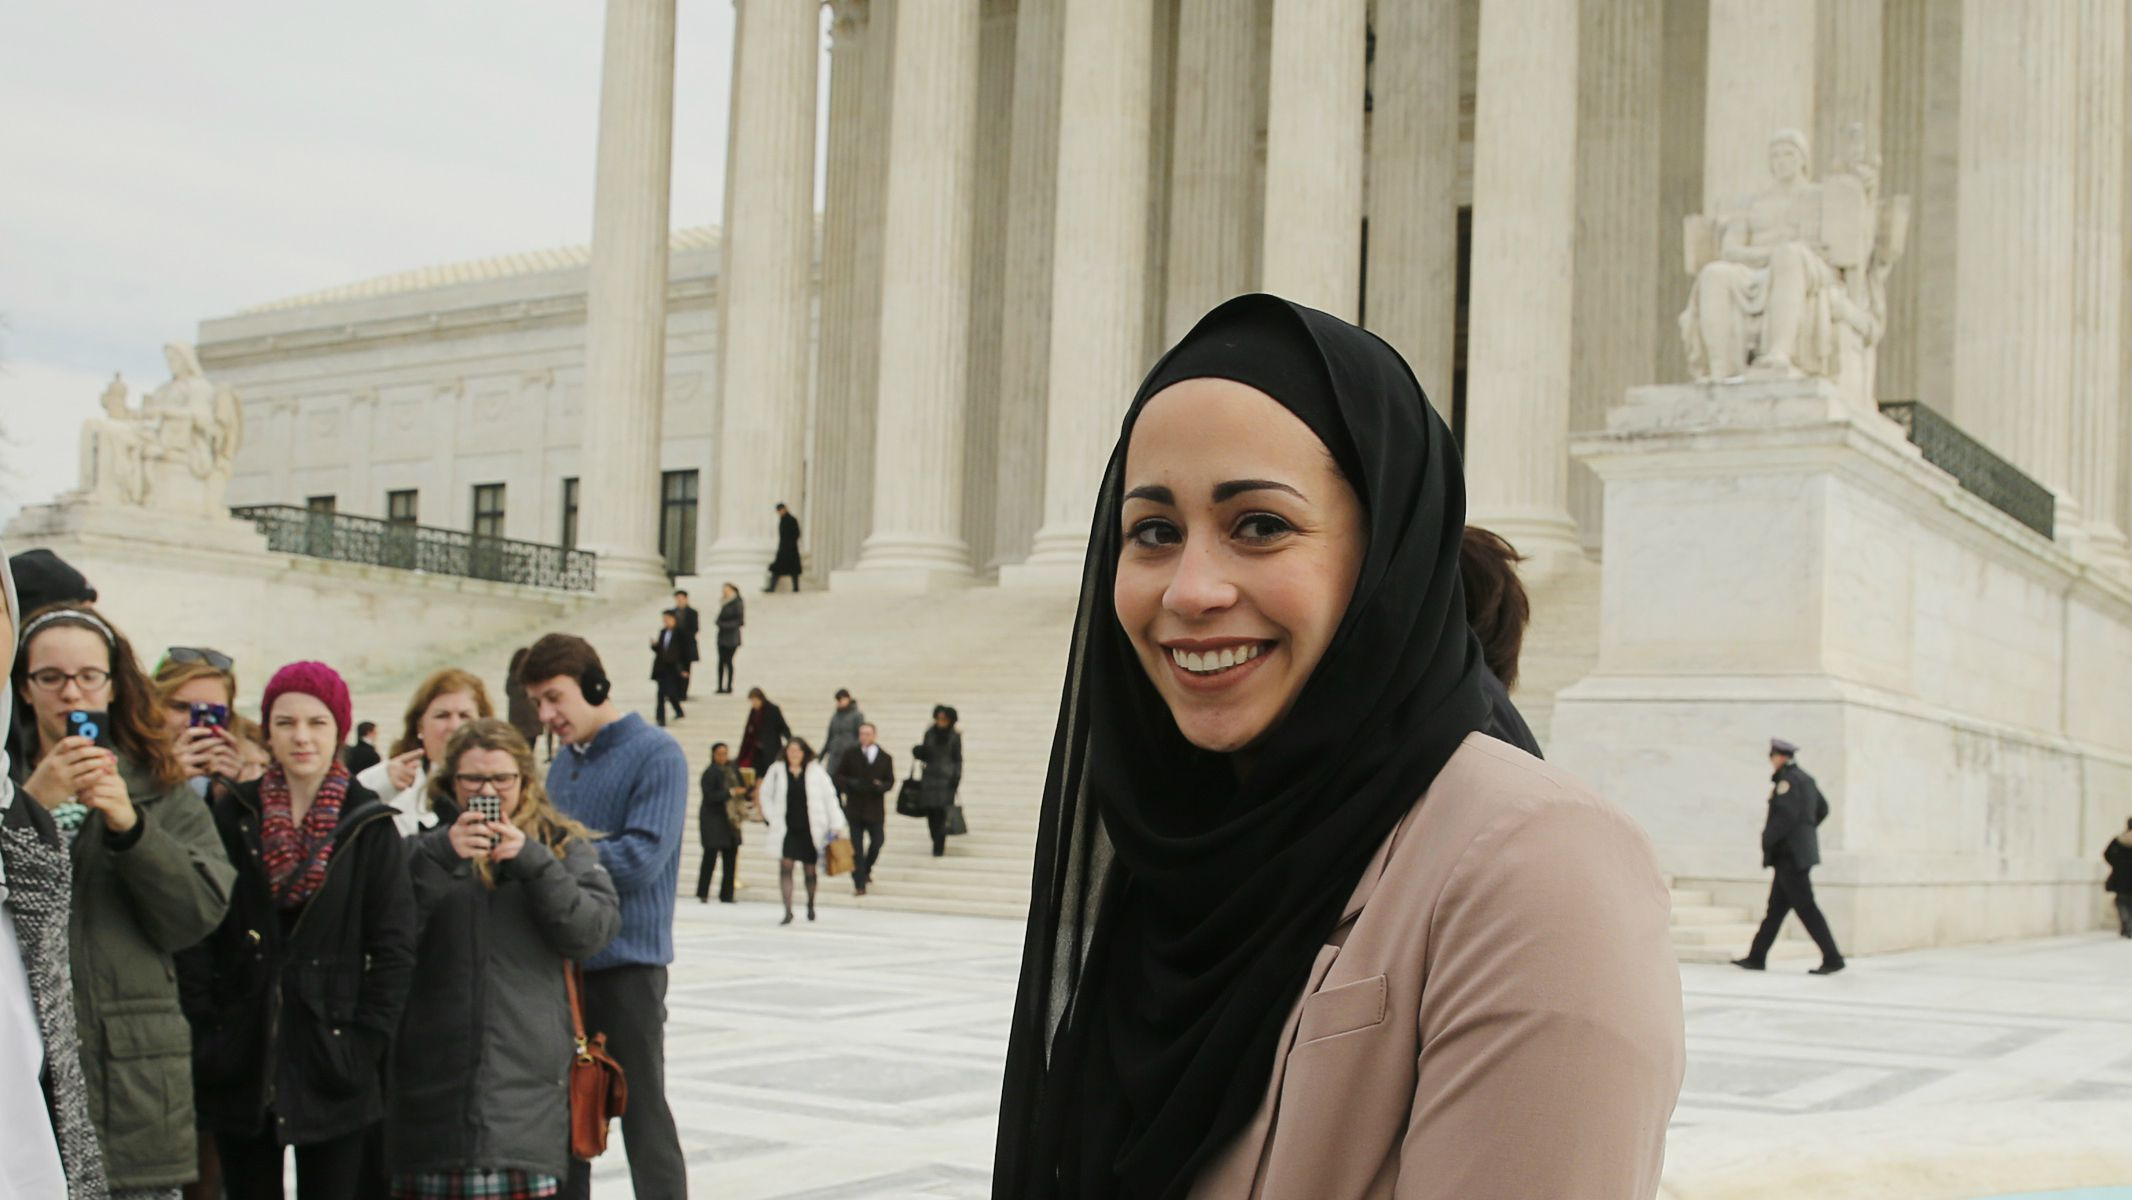 abercrombie and fitch, abercrombie & fitch, hijab, head covering, religious discrimination, freedom